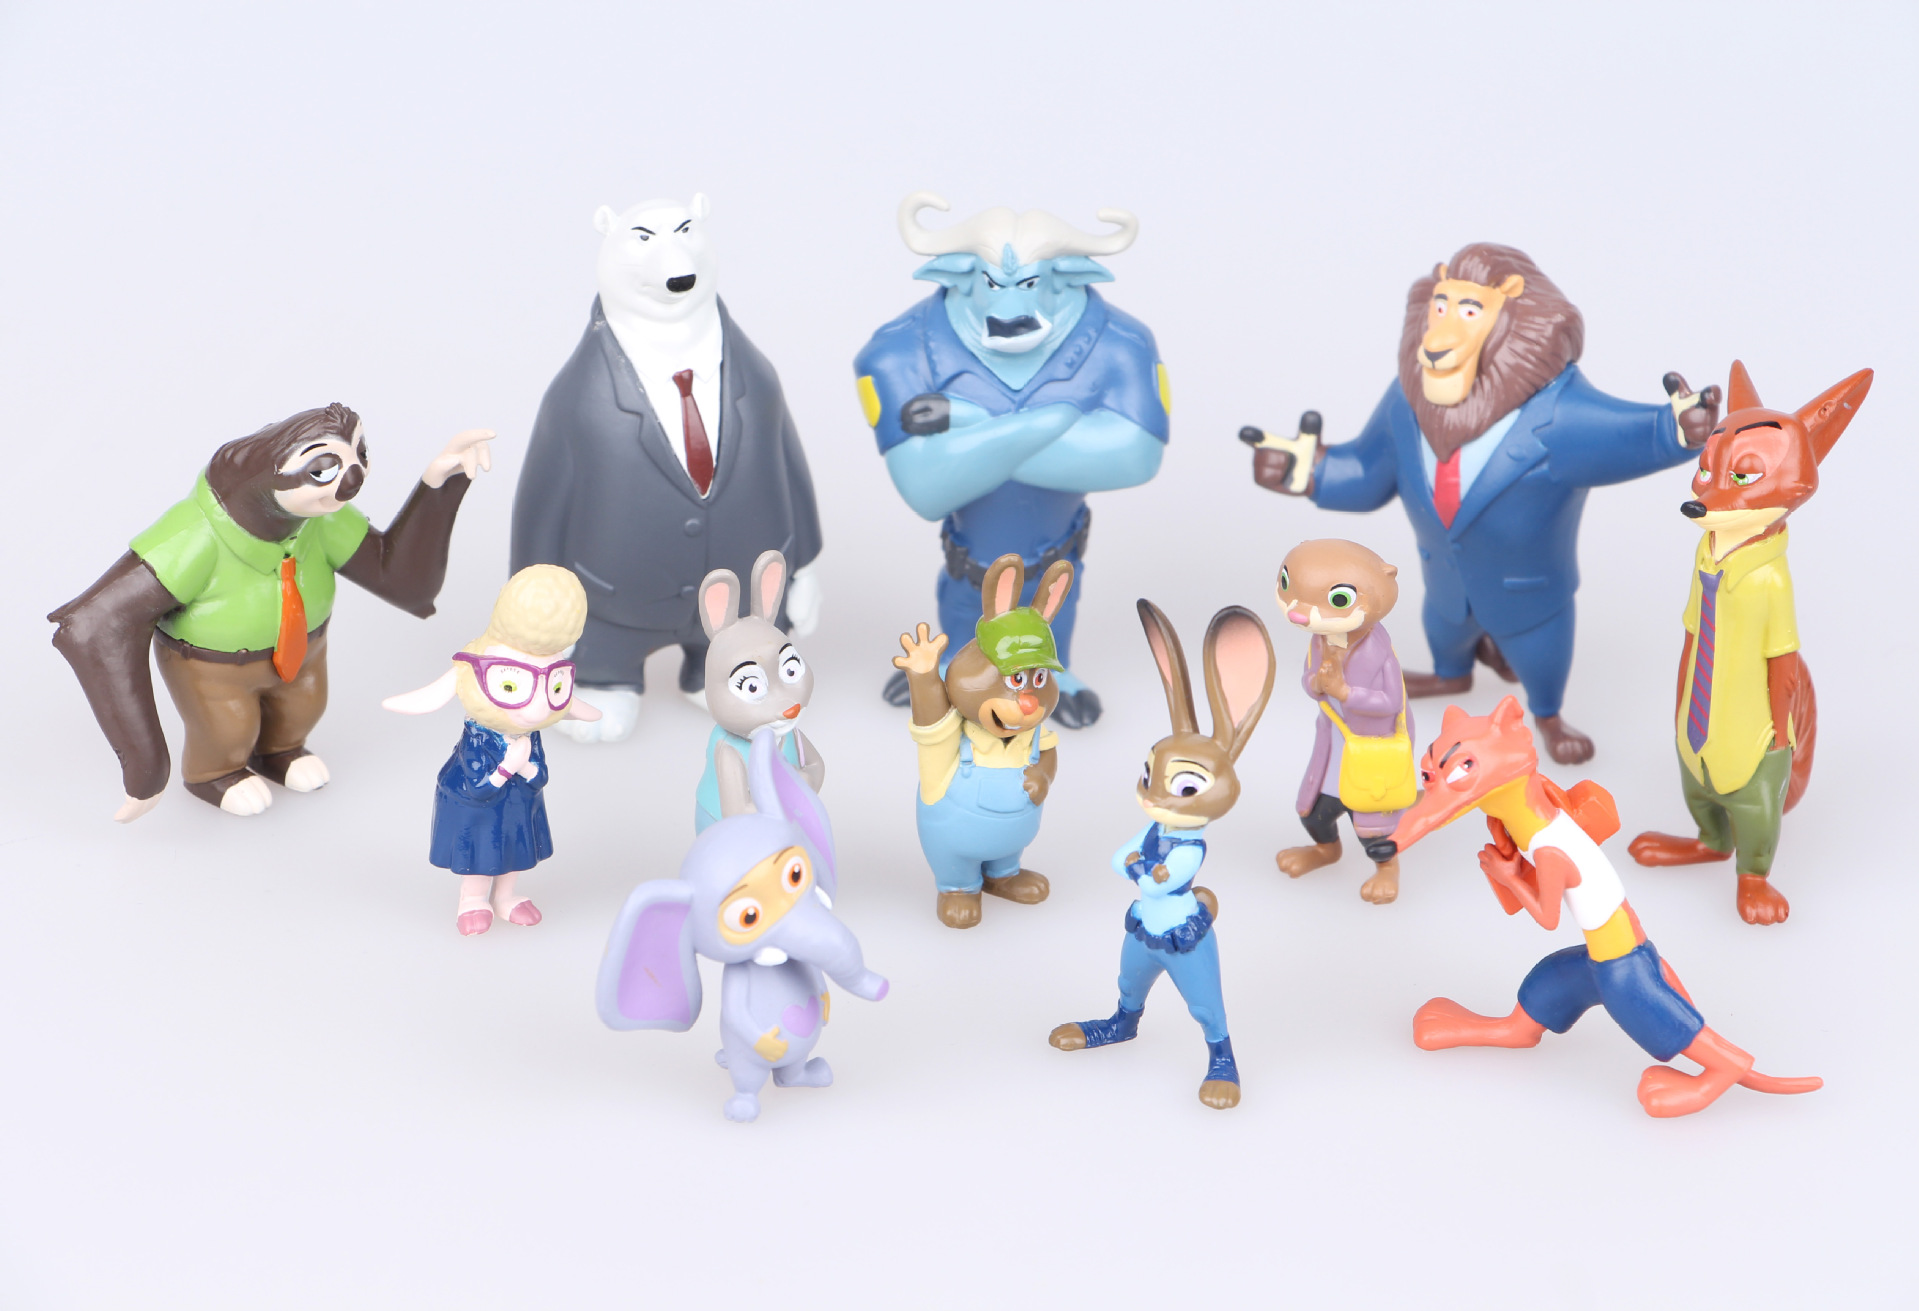 12 Pcs/set Zootopia Action Figure Toys High-quality Animal Rabbit Judy Cop Fox Nick Cartoon Brinquedos Model Children Gift image